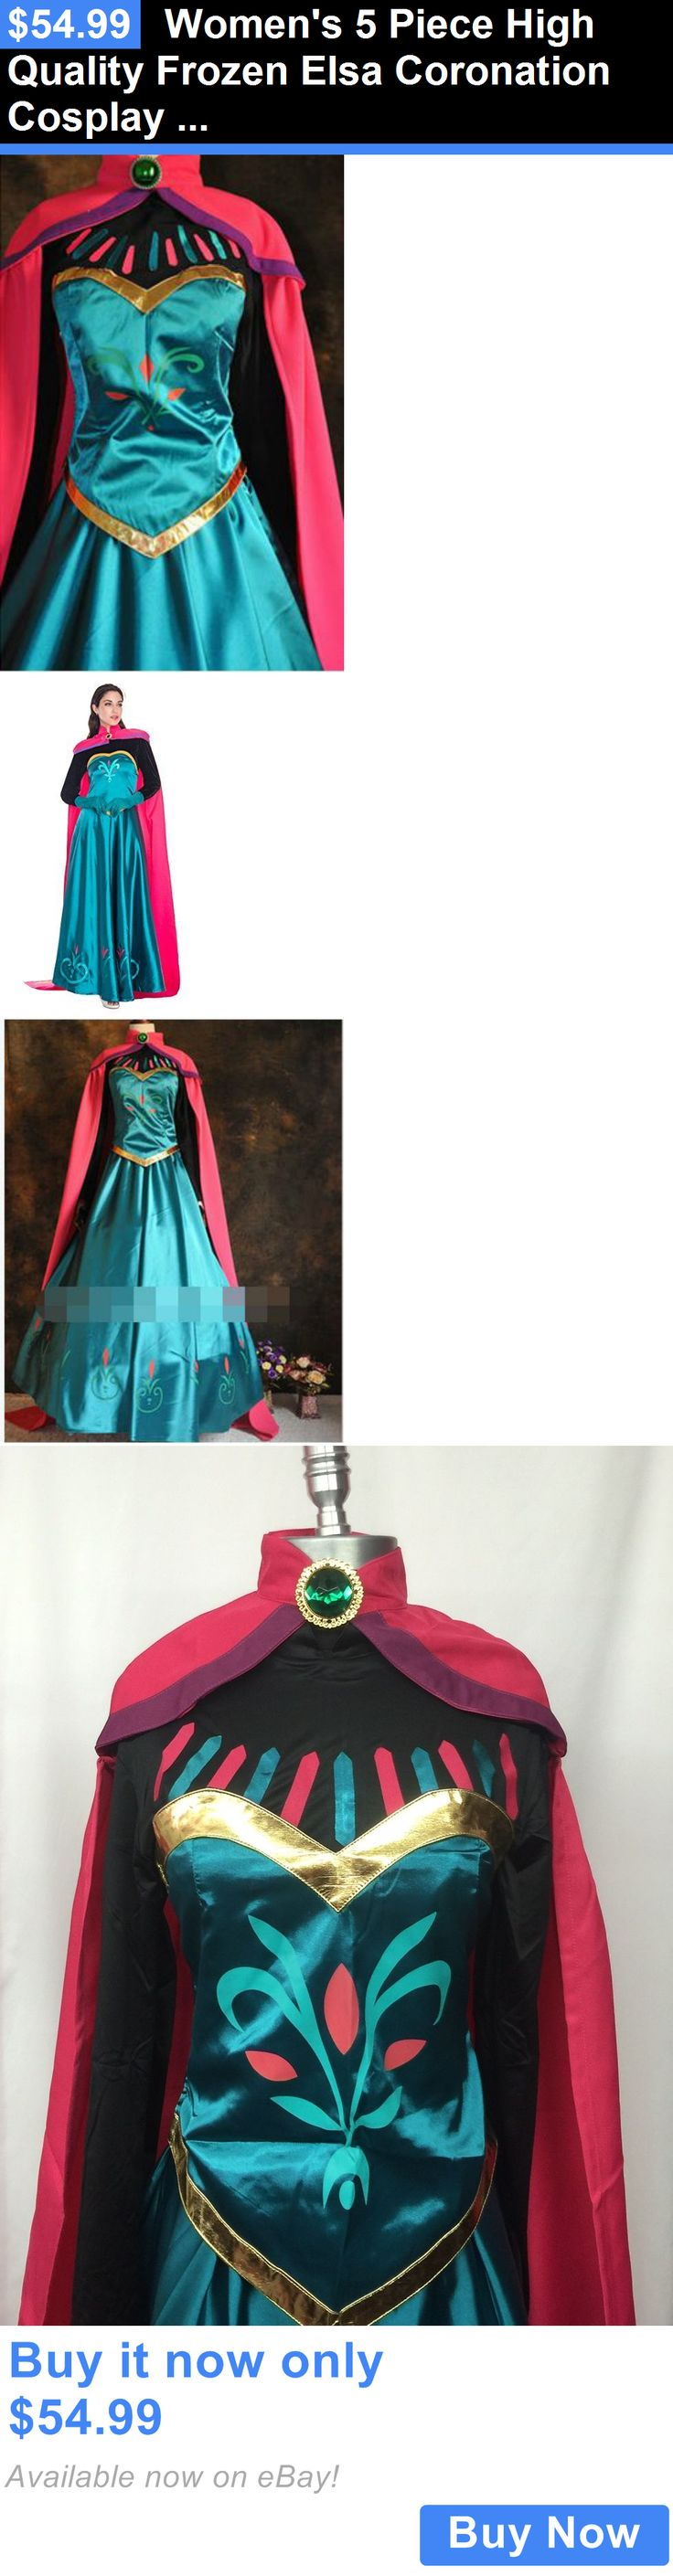 Halloween Costumes Women: Womens 5 Piece High Quality Frozen Elsa Coronation Cosplay Adult Costume BUY IT NOW ONLY: $54.99